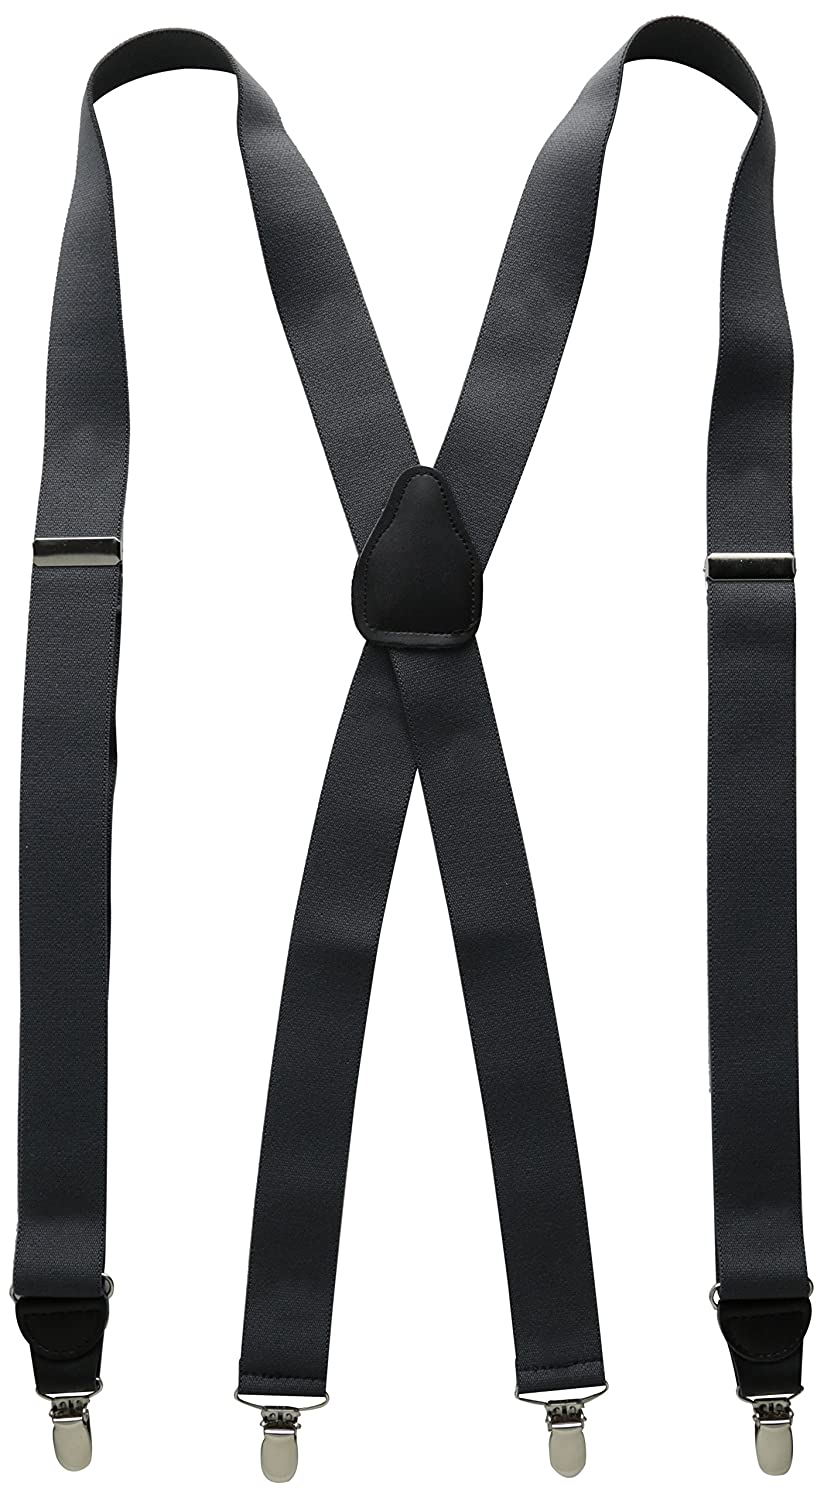 Stacy Adams Mens Big-Tall Extra Long Clip On Suspenders Black 54 Stacy Adams Men/'s Accessories 847X